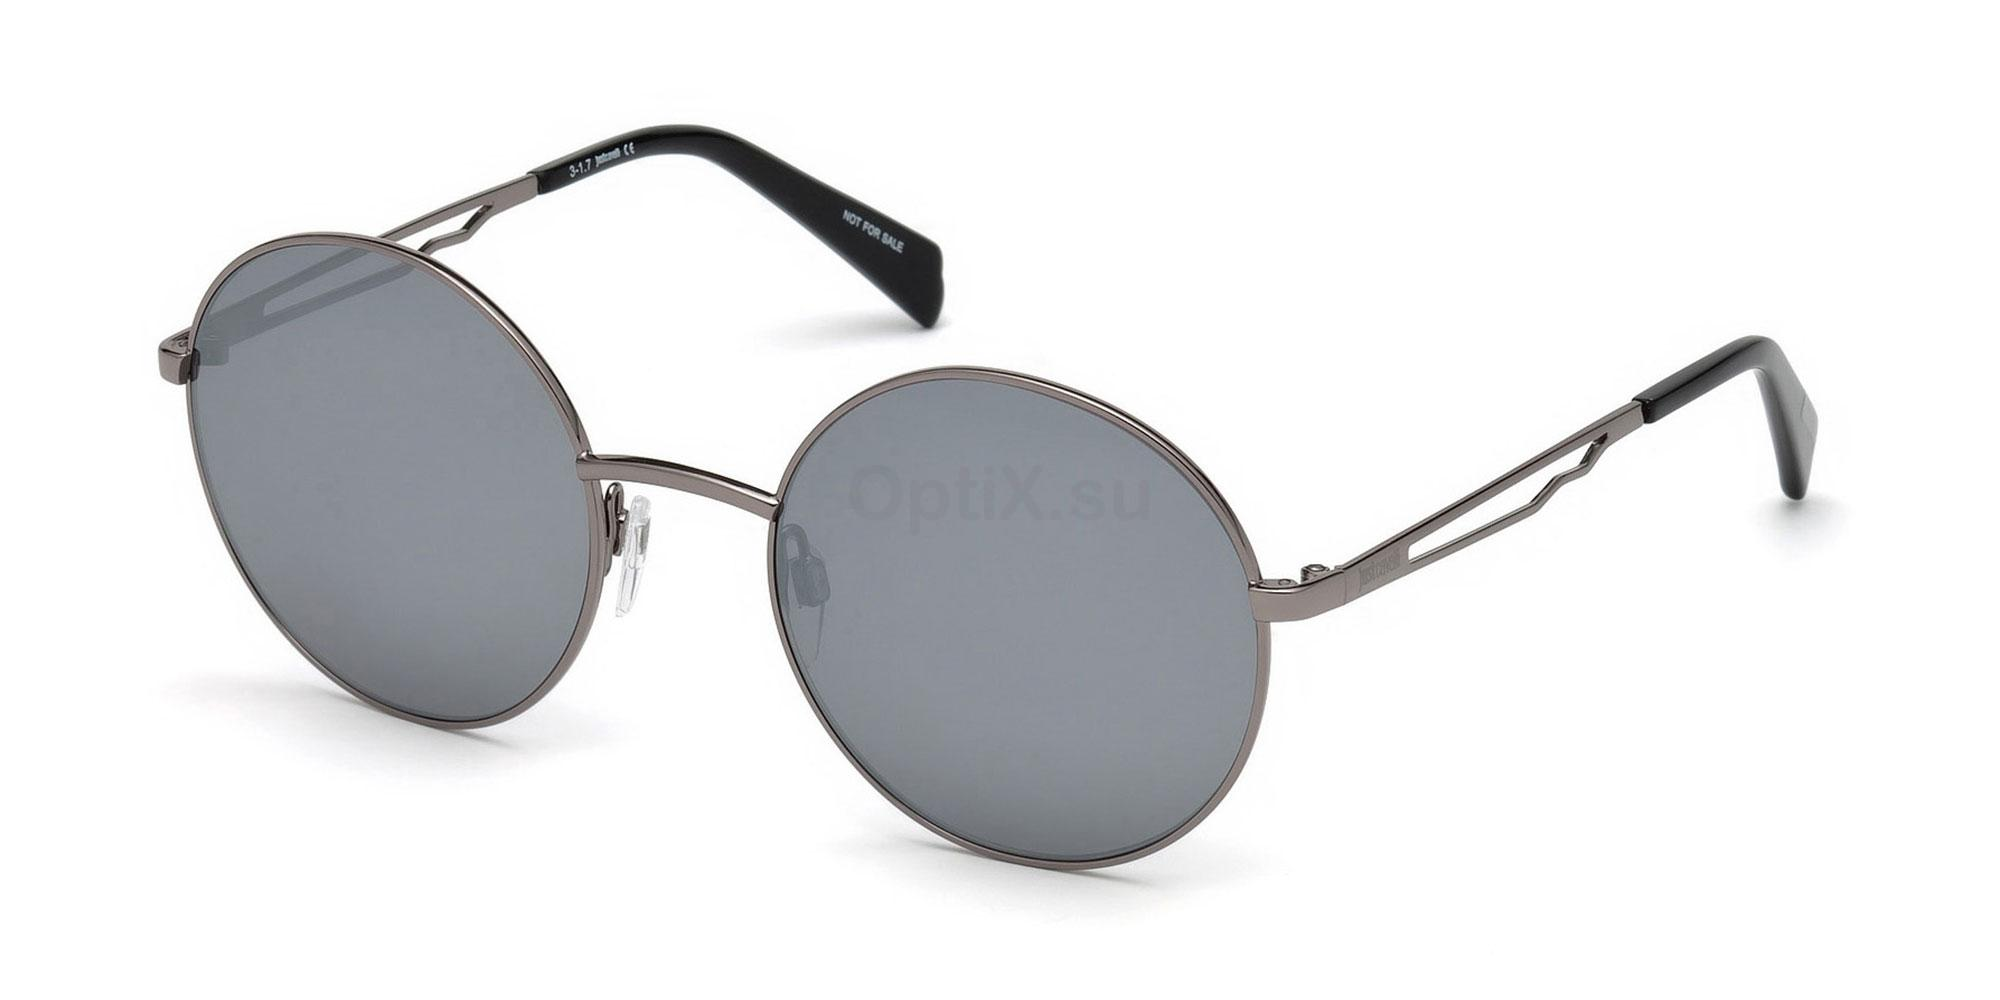 08C JC840S Sunglasses, Just Cavalli